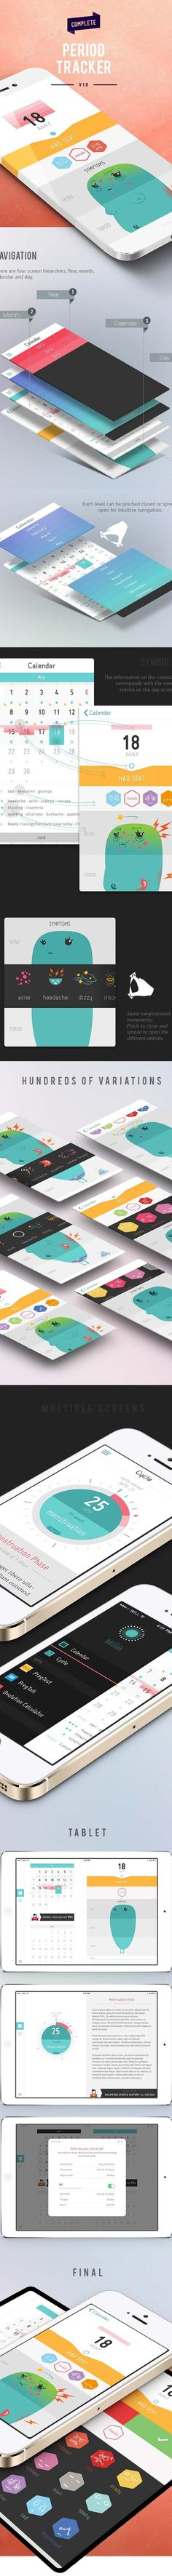 Mobile UI Design Inspiration #10 #mobile #ui #ux